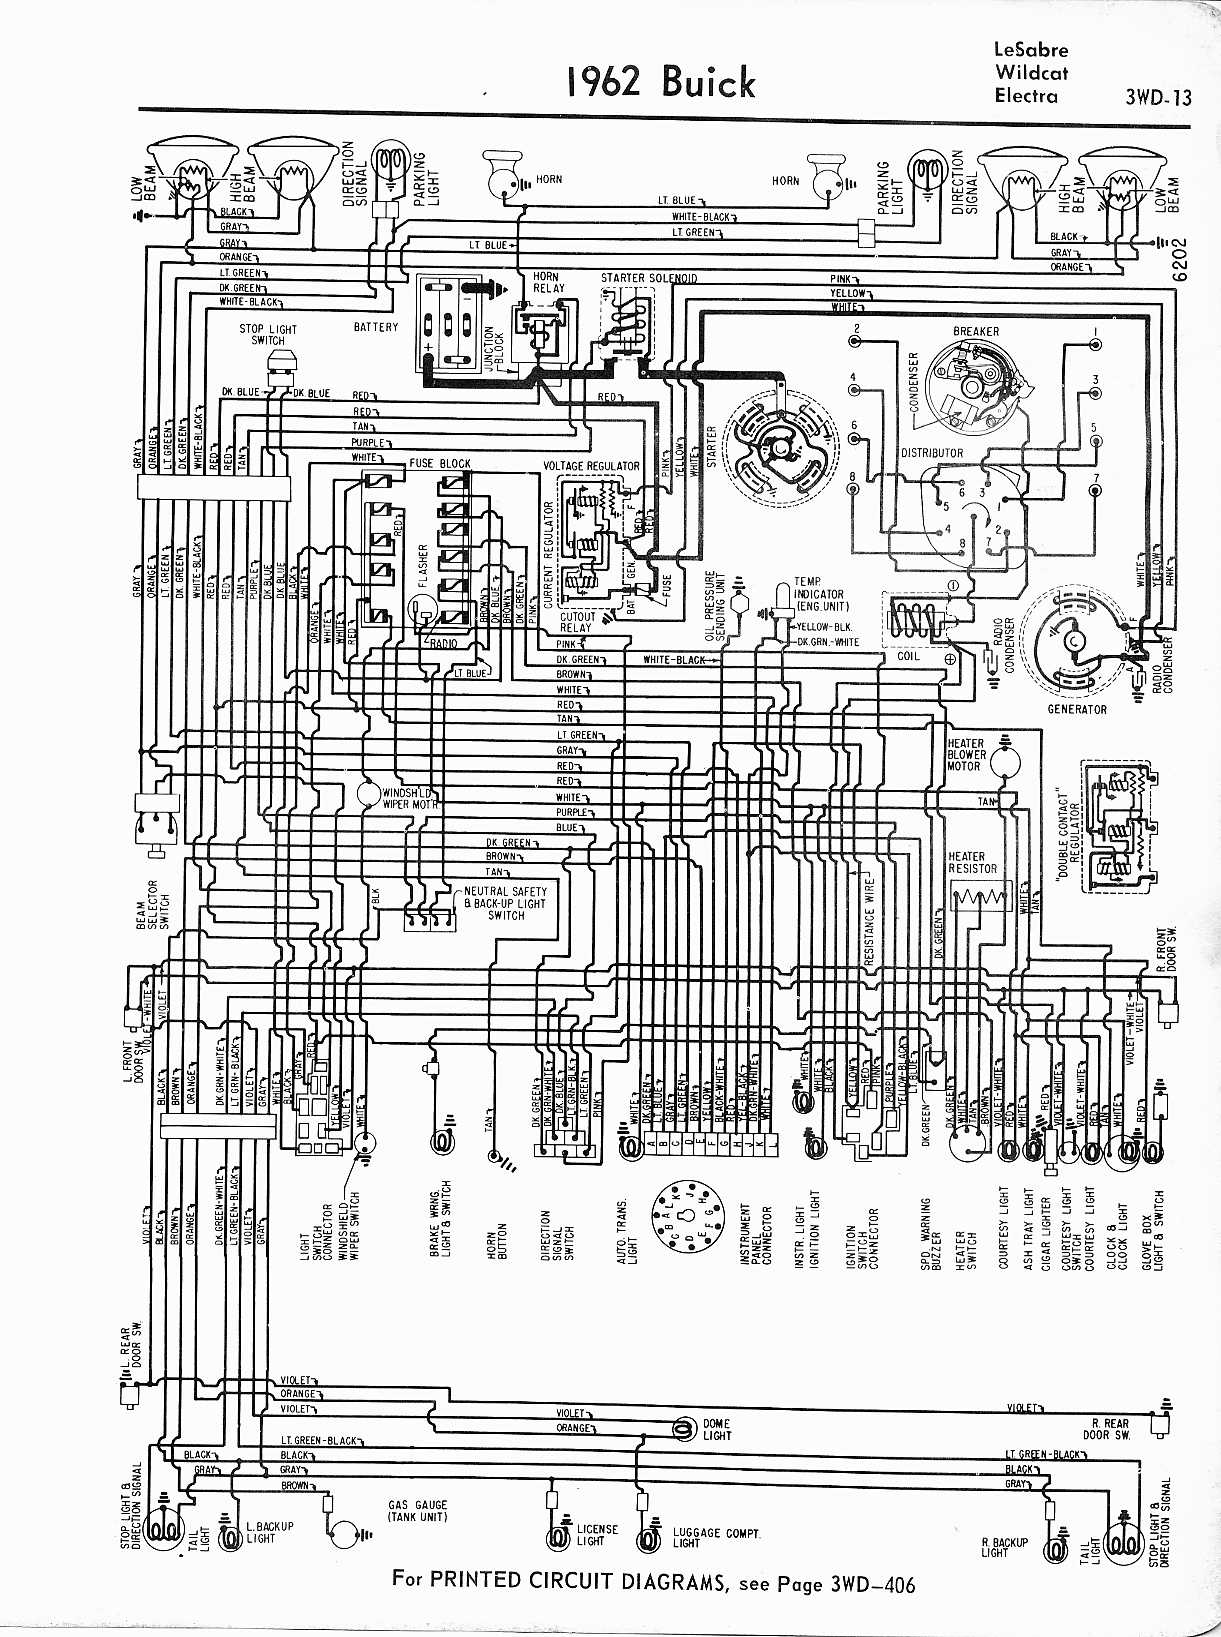 hight resolution of buick wiring diagrams 1957 1965 1969 vw wiring diagram 1969 buick turn signal wiring diagram